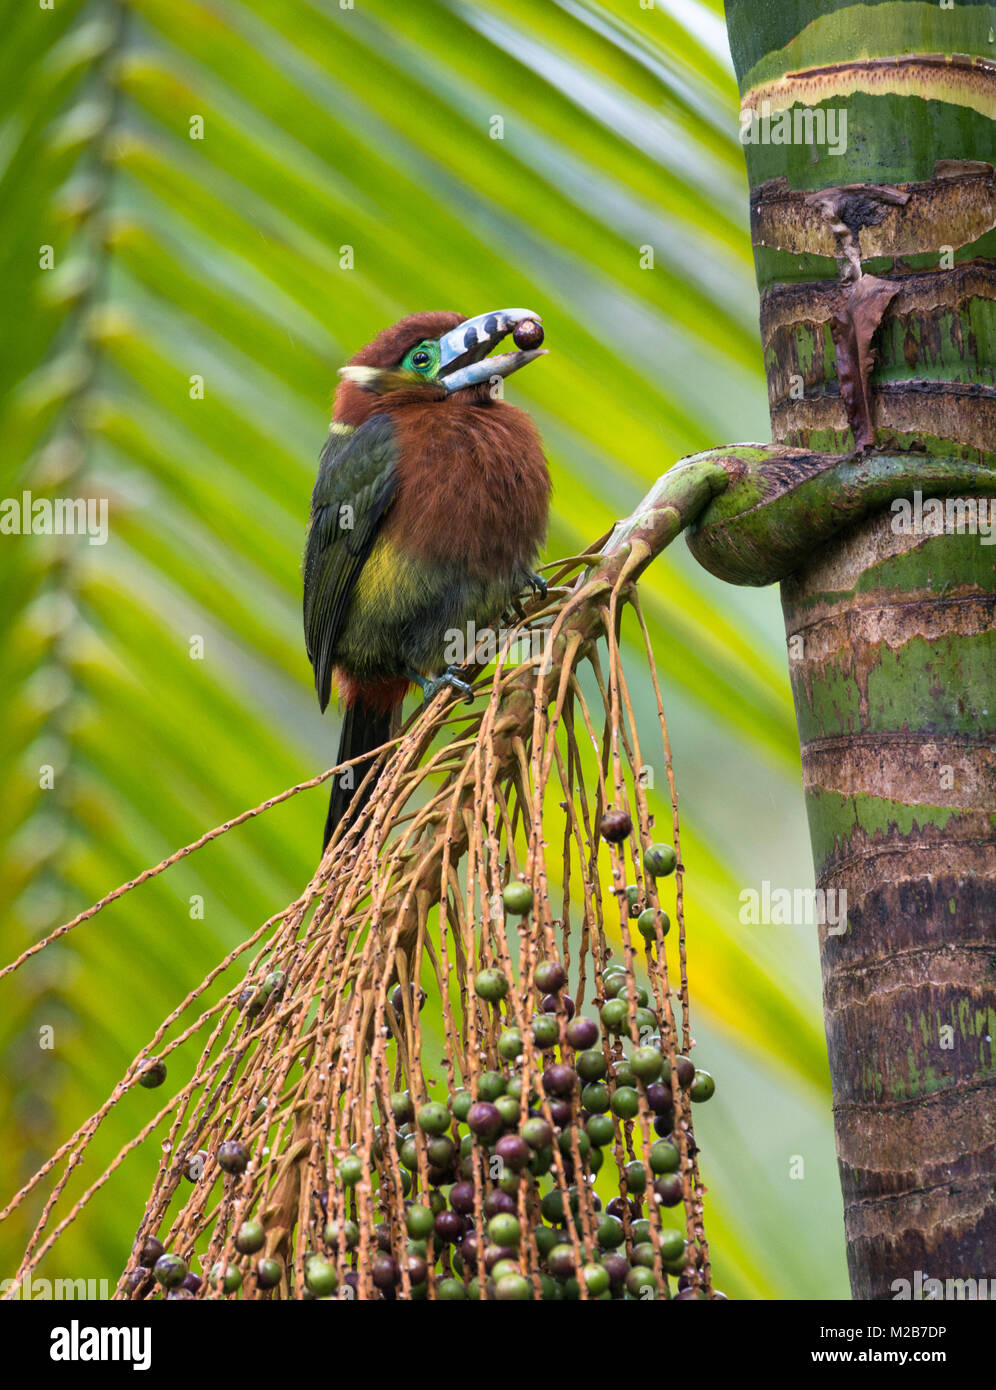 A Spot-billed Toucanet feeding on a Palmito tree in the Atlantic Rainforest - Stock Image